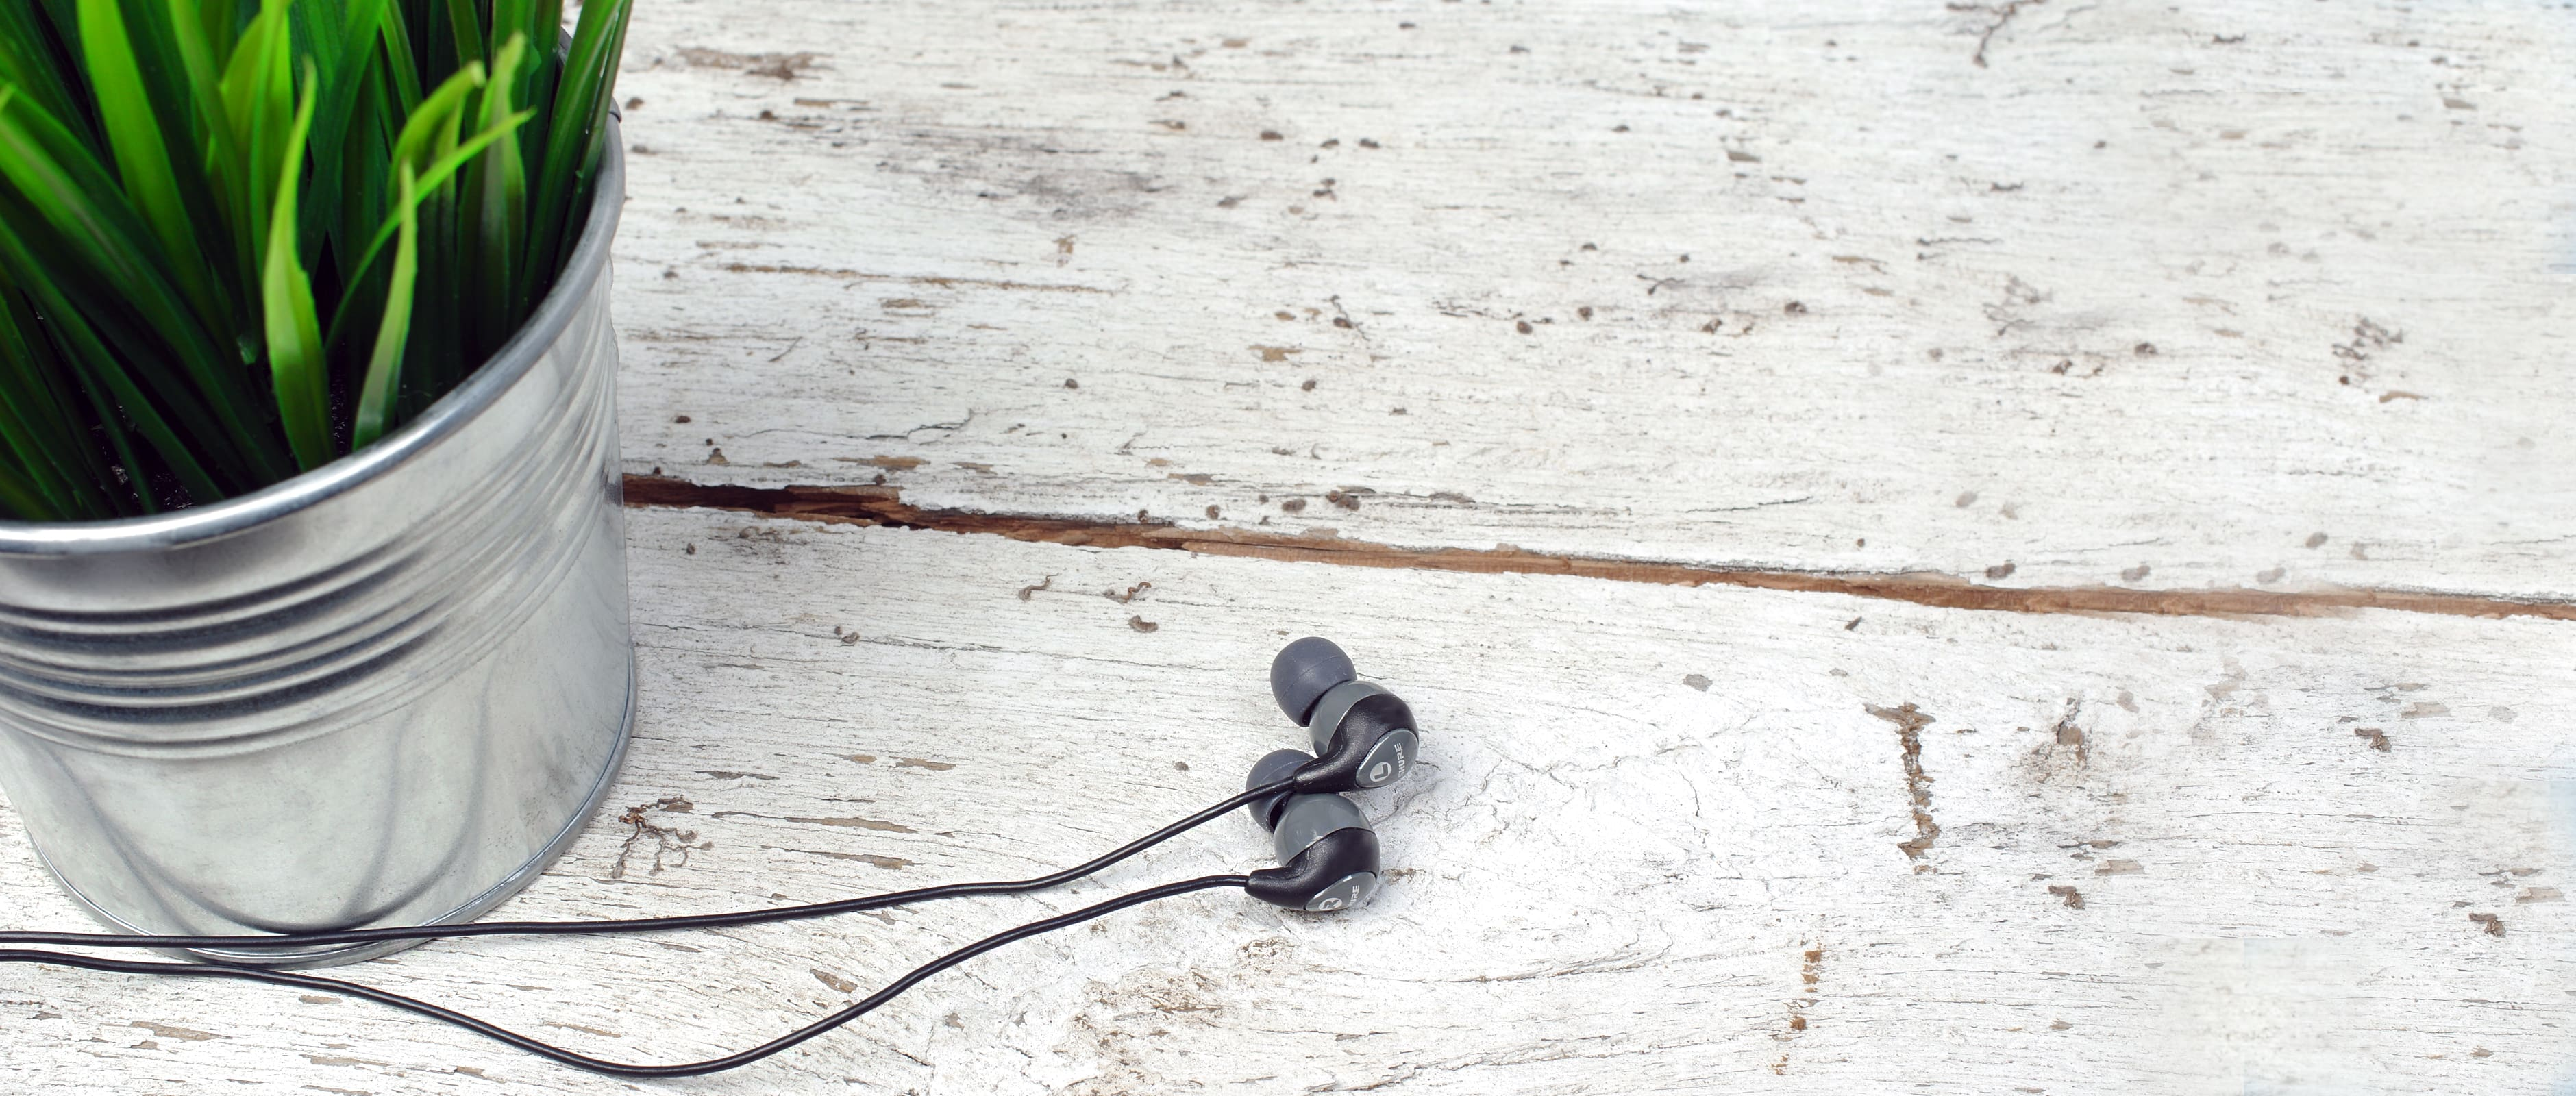 The Shure SE112 in-ear headphones